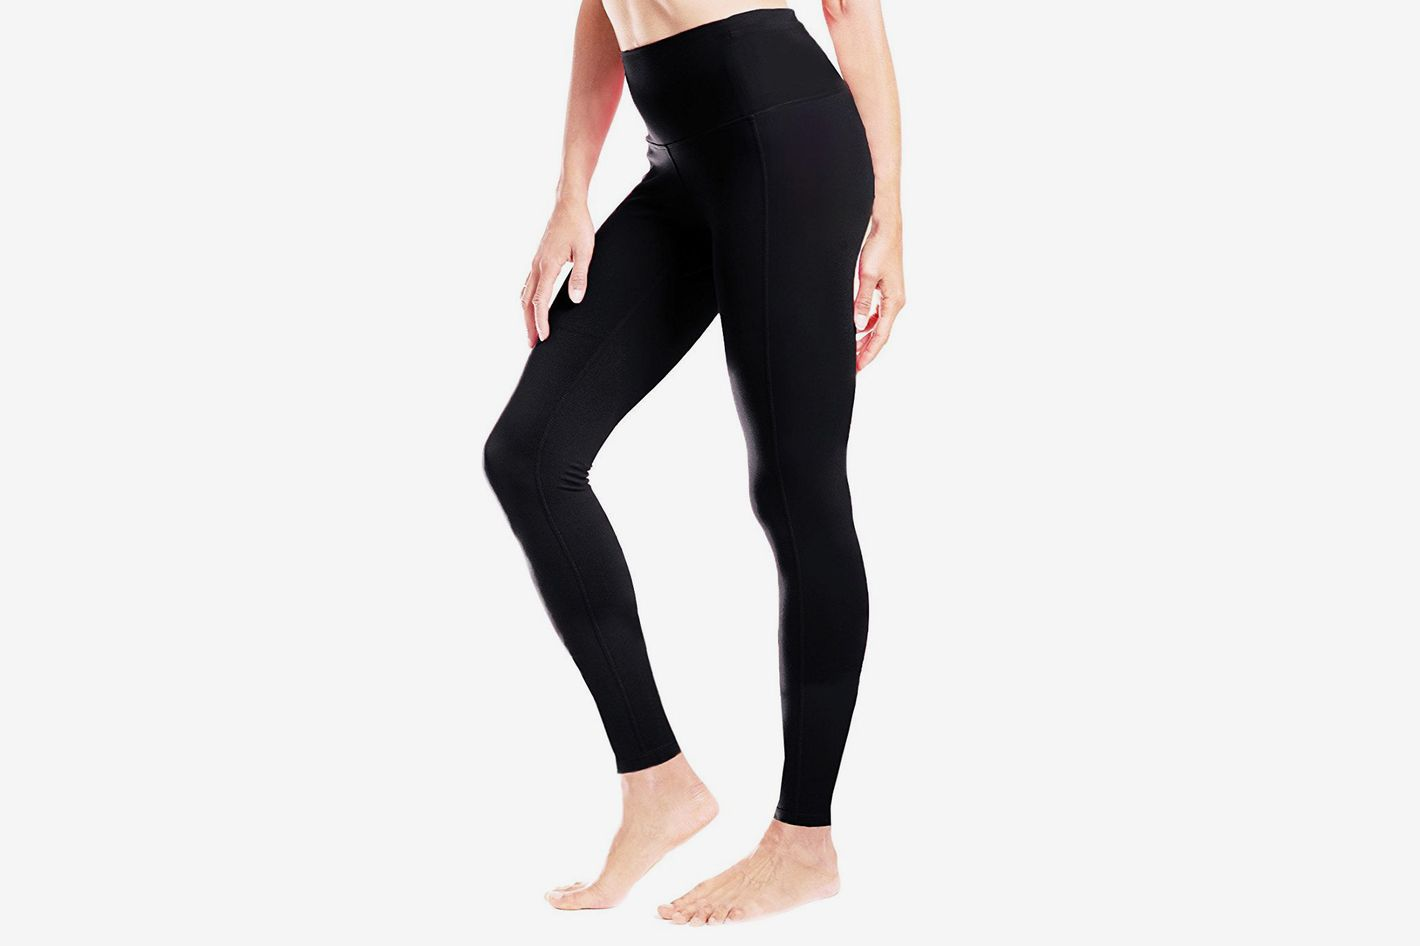 a46f01e711a33a Yogipace Petite Length High Waisted Yoga Leggings